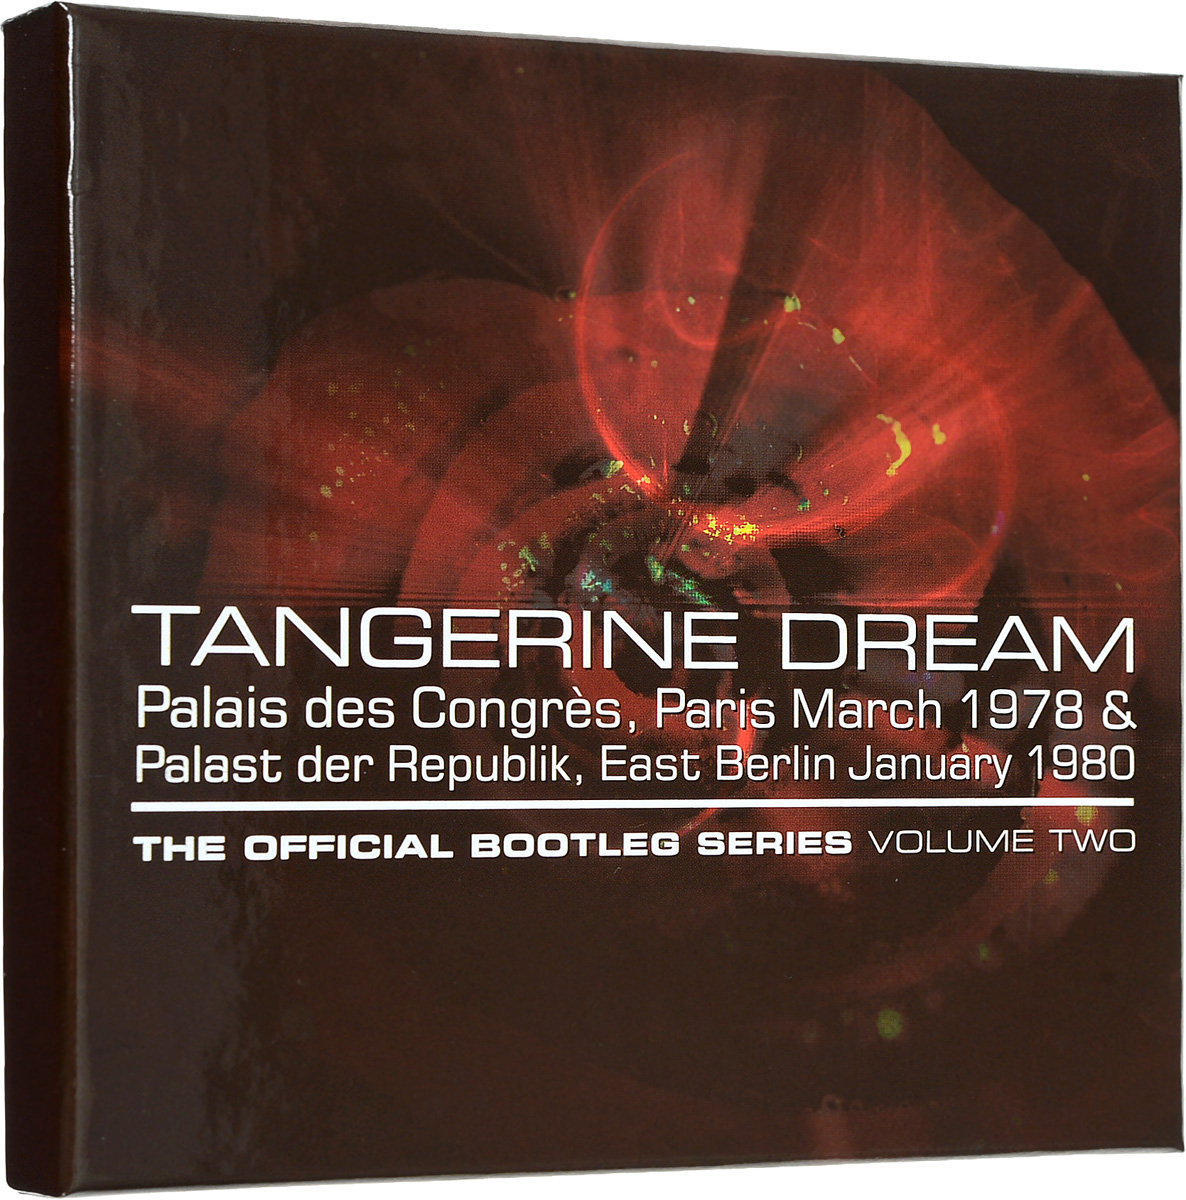 Tangerine Dream. The Official Bootleg Series Volume Two (4 CD)